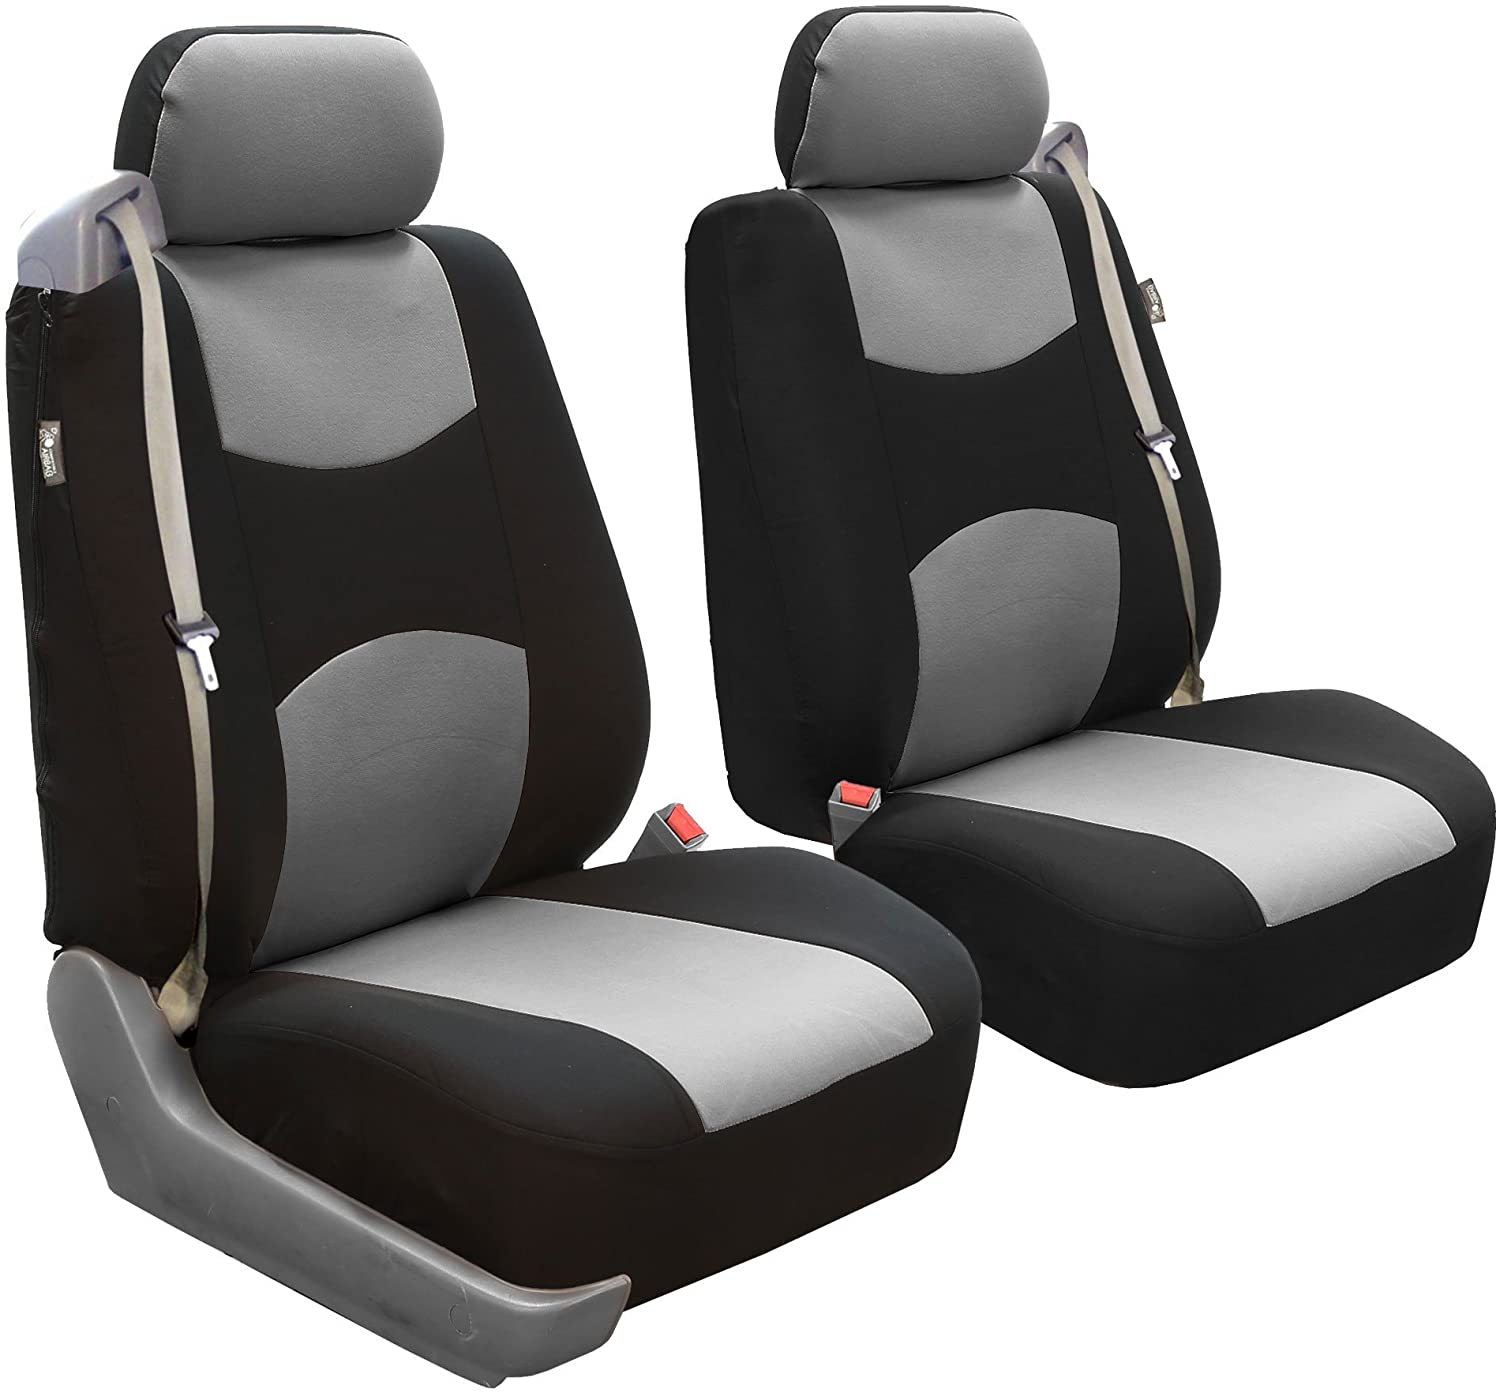 FH Group FB052CHARCOAL102 Charcoal Front Flat Cloth Bucket Seat Cover Multifunctional Airbag Compatible Set of 2